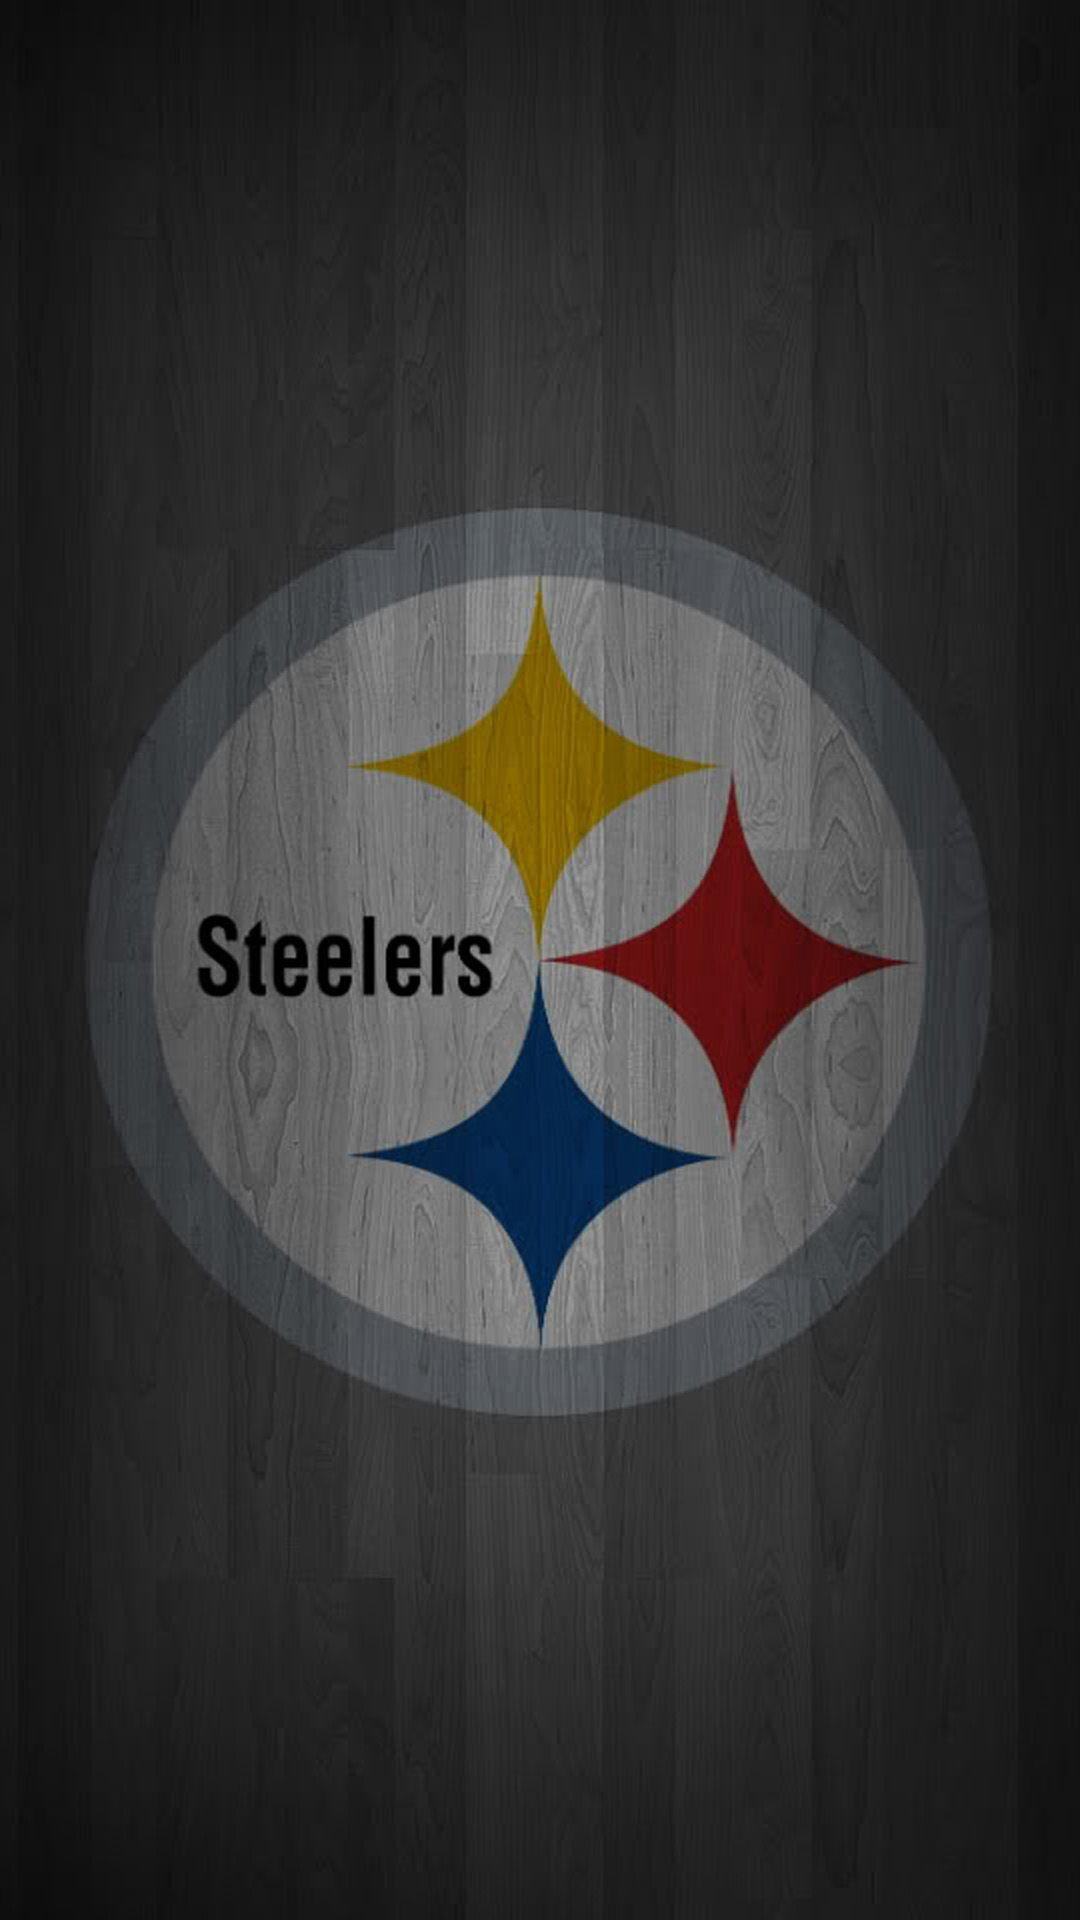 Steelers Wallpapers 2016 1080x1920